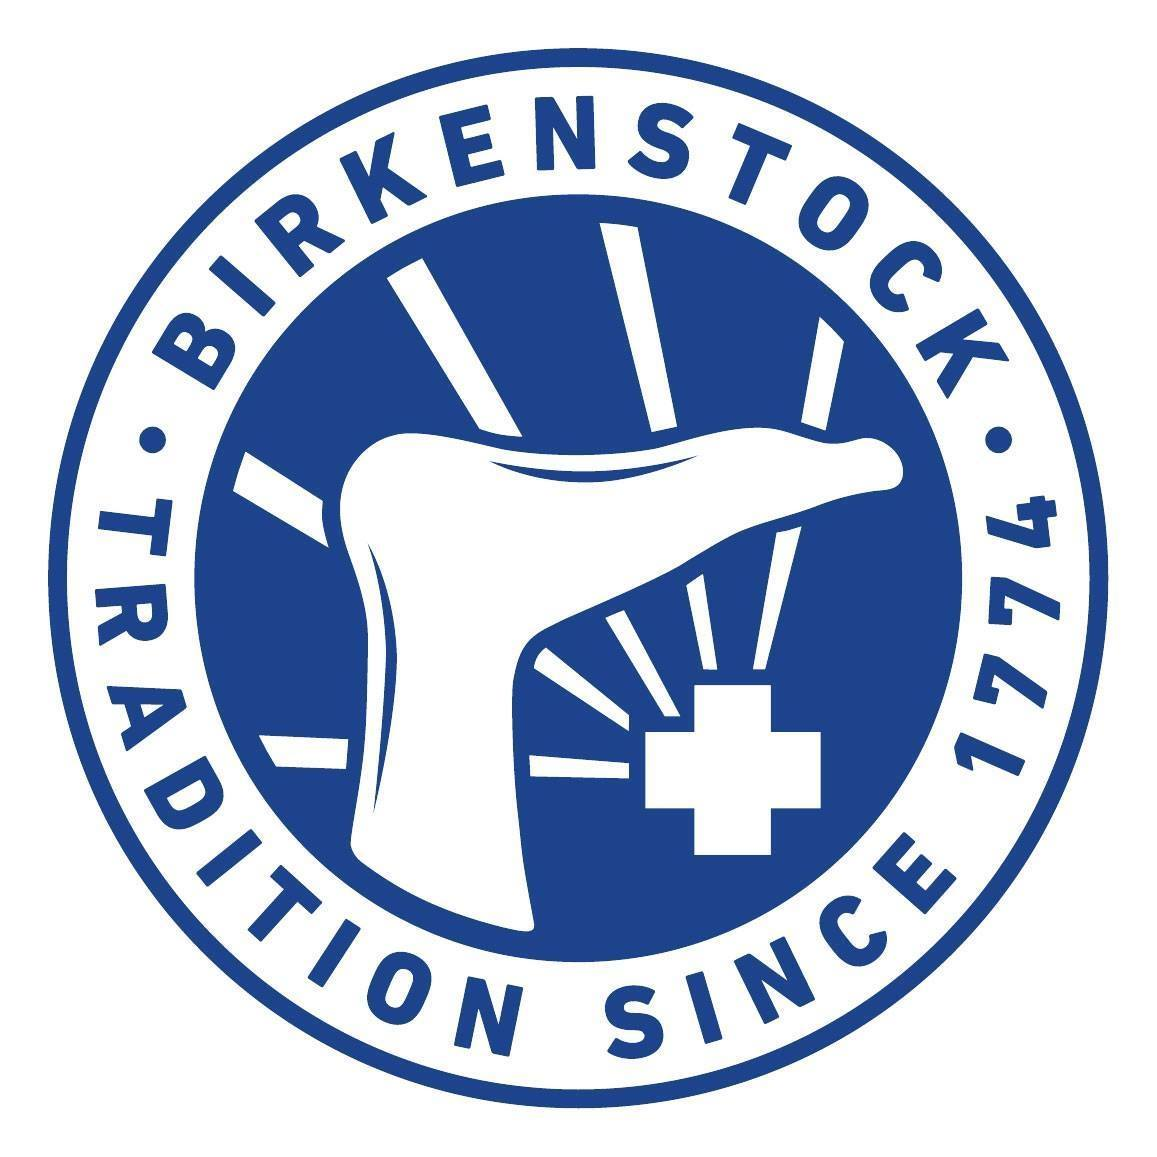 Birkenstock - German bornLegendary sandals with a renowned orthopedic footbed.